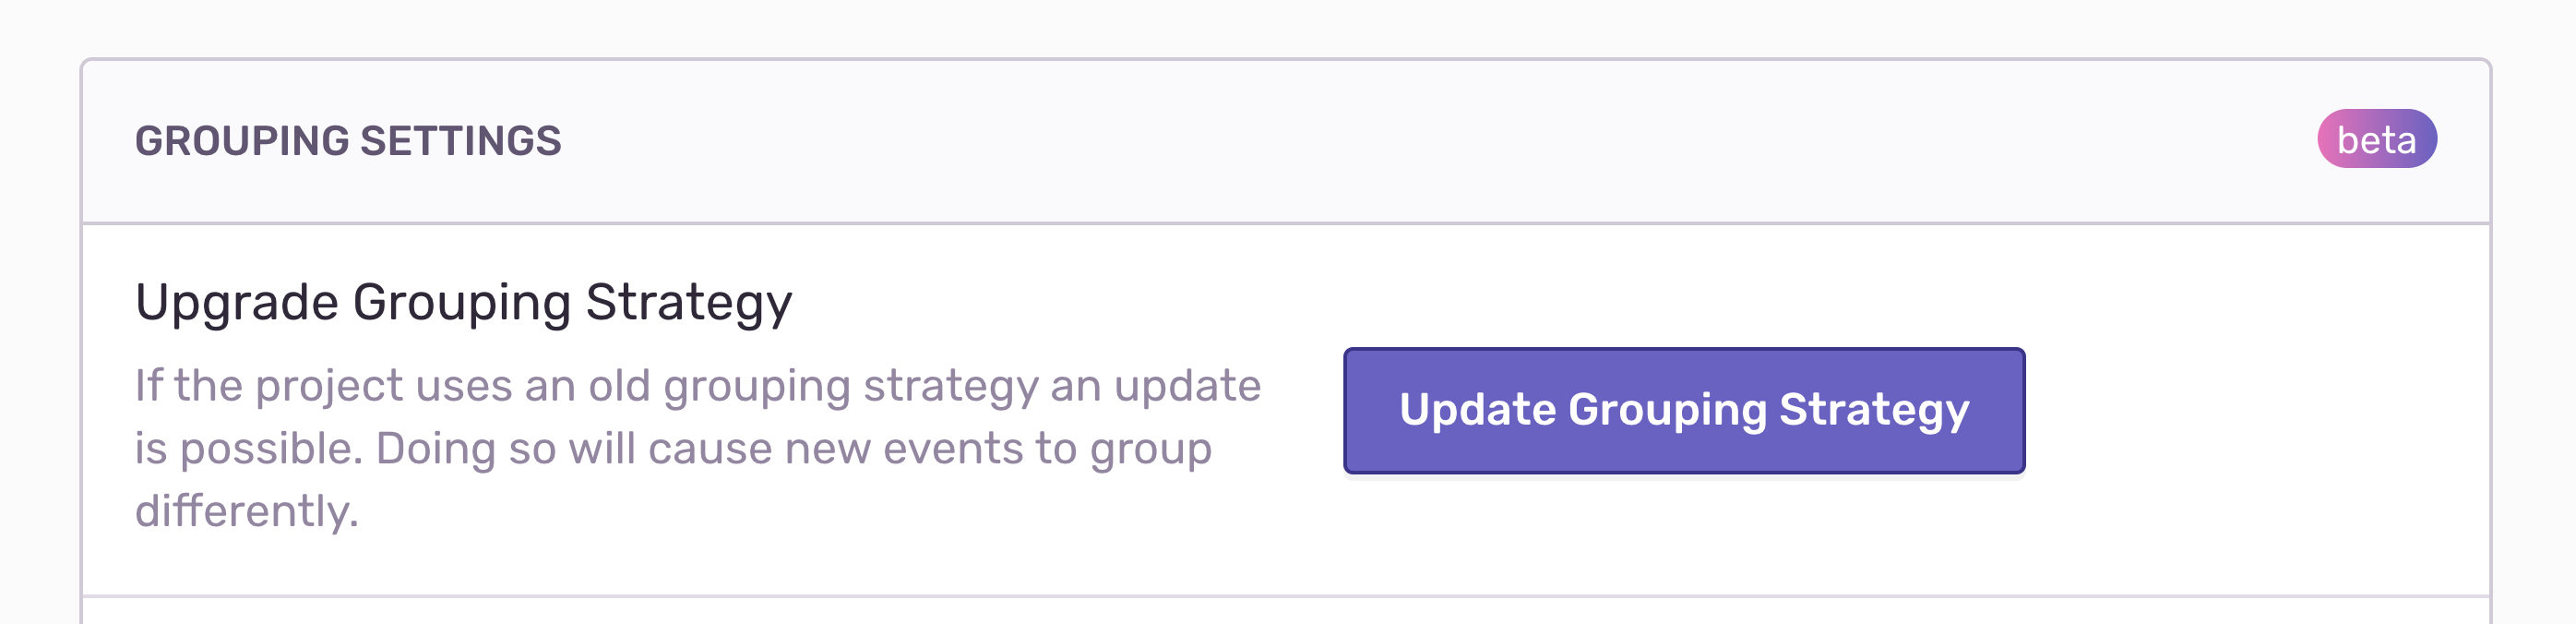 Notification to upgrade grouping strategy, as found in Sentry's grouping settings.